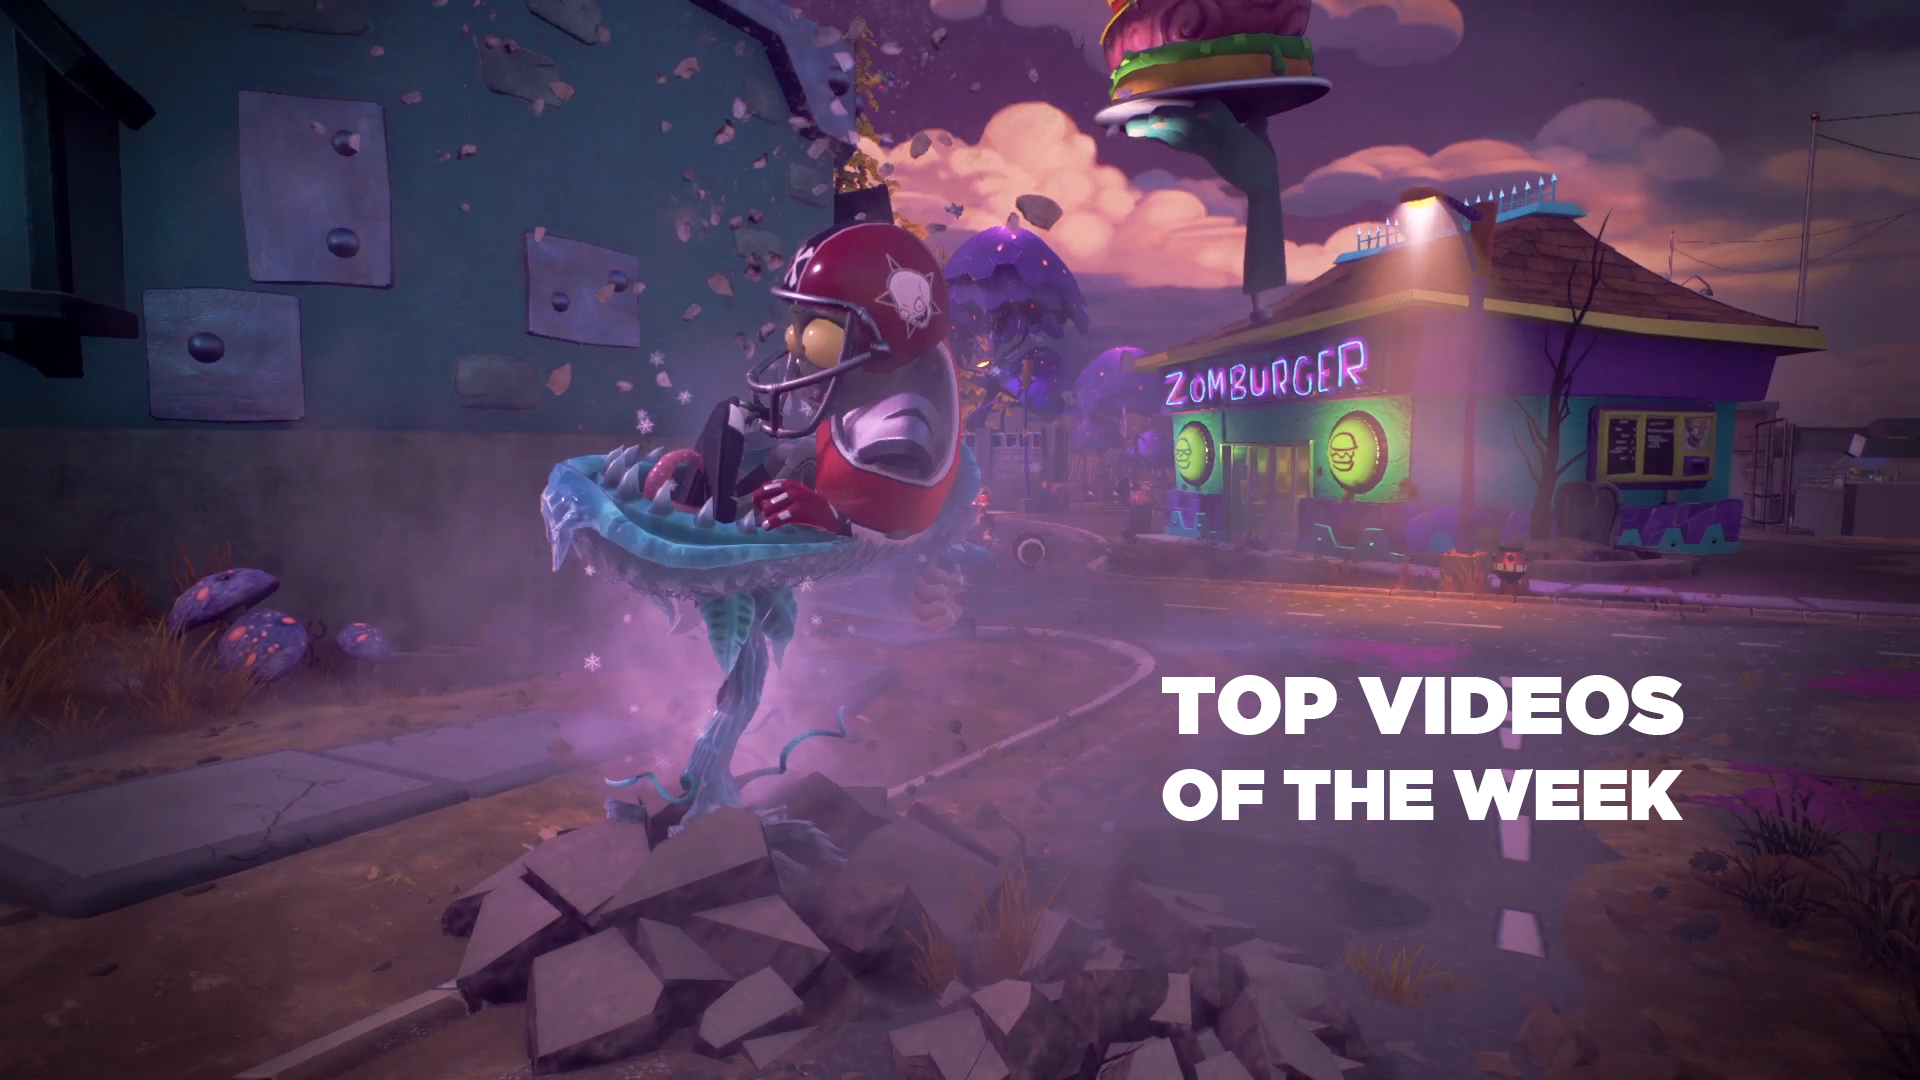 Unique Top  Plants Vs Zombies Garden Warfare  Videos Of The Week  With Outstanding Solar Garden Fairy Lights Besides Pictures Of Small Gardens Furthermore New Peking Garden With Cool Water Features For Gardens Ideas Also Sunlight Garden Side Turkey In Addition Cedar Garden Rooms And Garden Mood Lighting As Well As Garden Hoses Reviews Additionally Wooden Garden Furniture Bq From Pvzgwcom With   Outstanding Top  Plants Vs Zombies Garden Warfare  Videos Of The Week  With Cool Solar Garden Fairy Lights Besides Pictures Of Small Gardens Furthermore New Peking Garden And Unique Water Features For Gardens Ideas Also Sunlight Garden Side Turkey In Addition Cedar Garden Rooms From Pvzgwcom